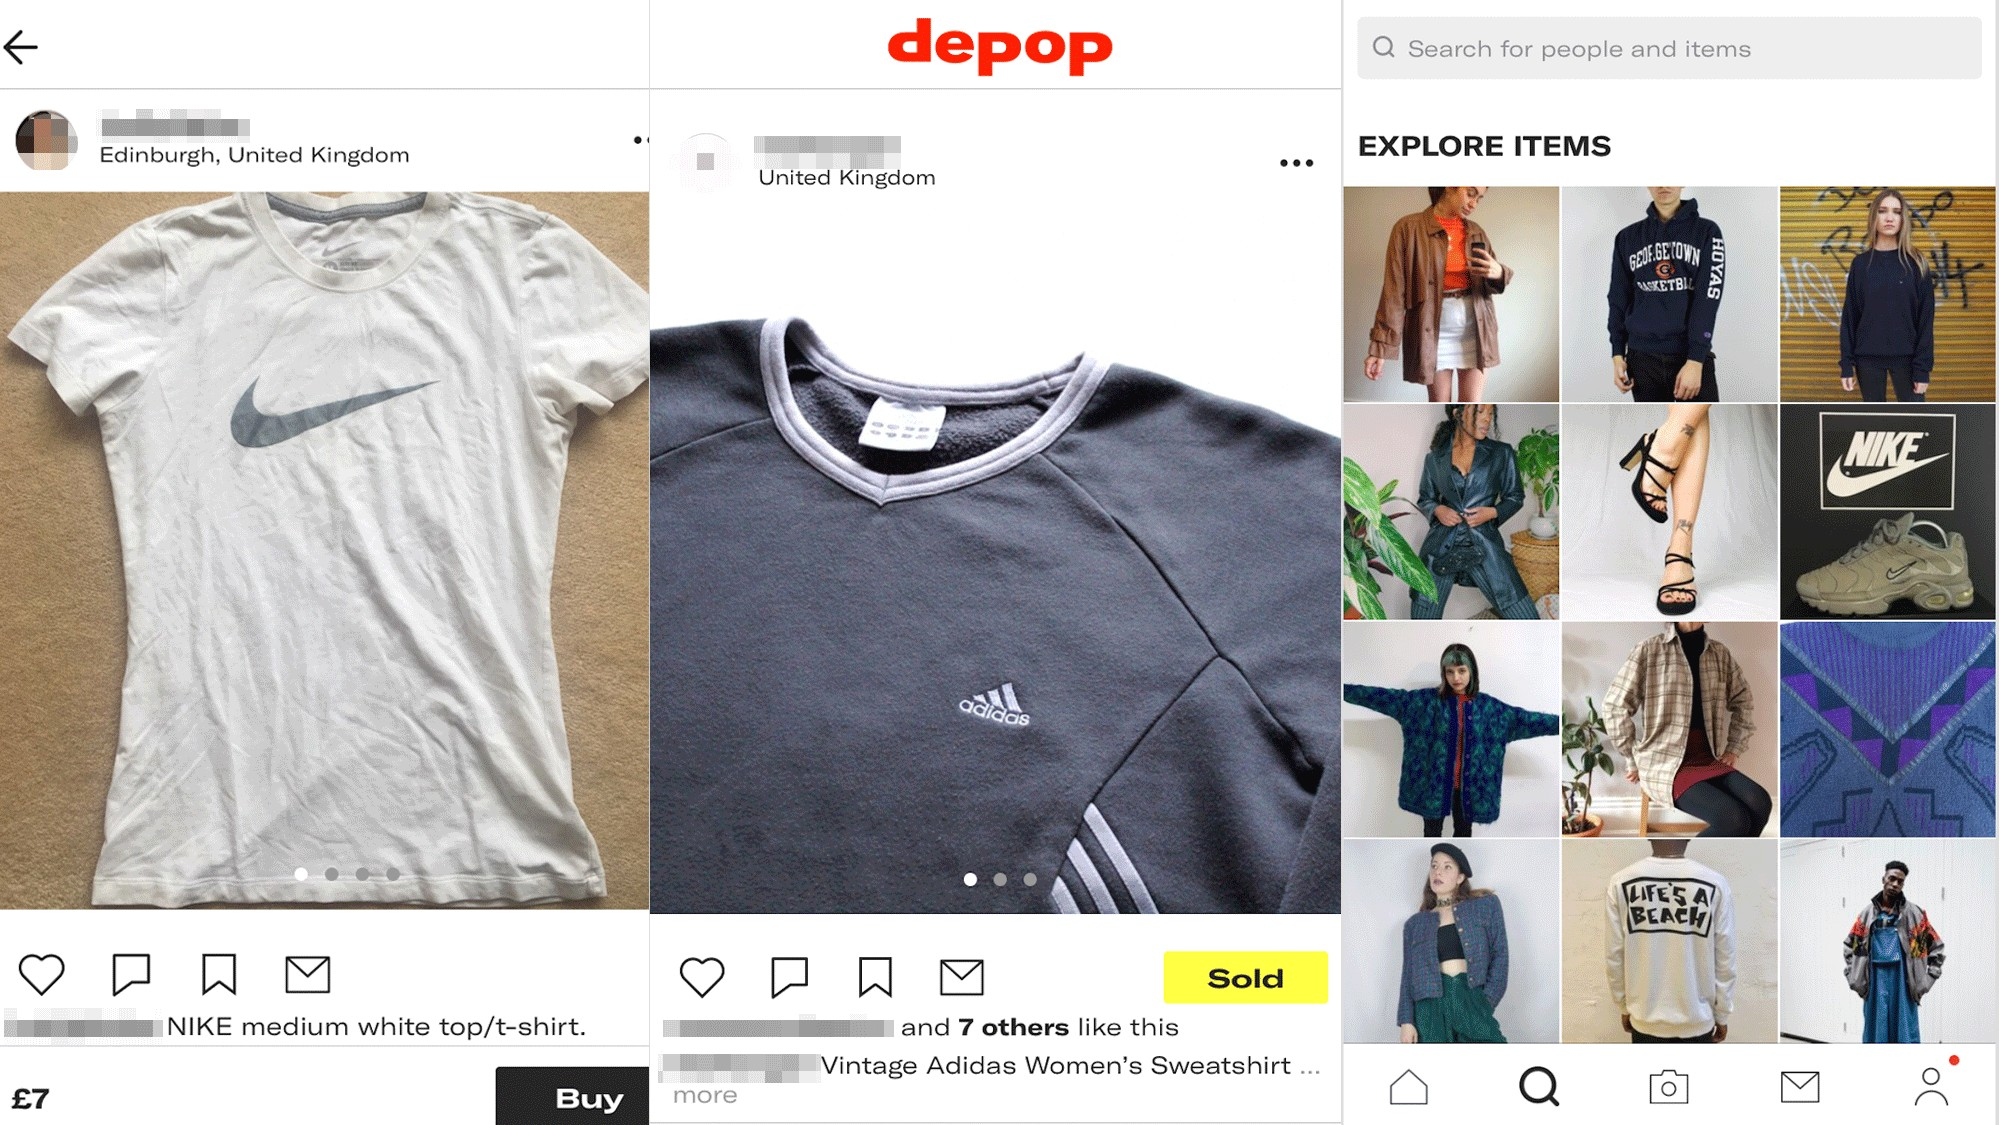 7b646faae340 Here's Every Single Item You're Going to Buy On Depop This Winter - VICE